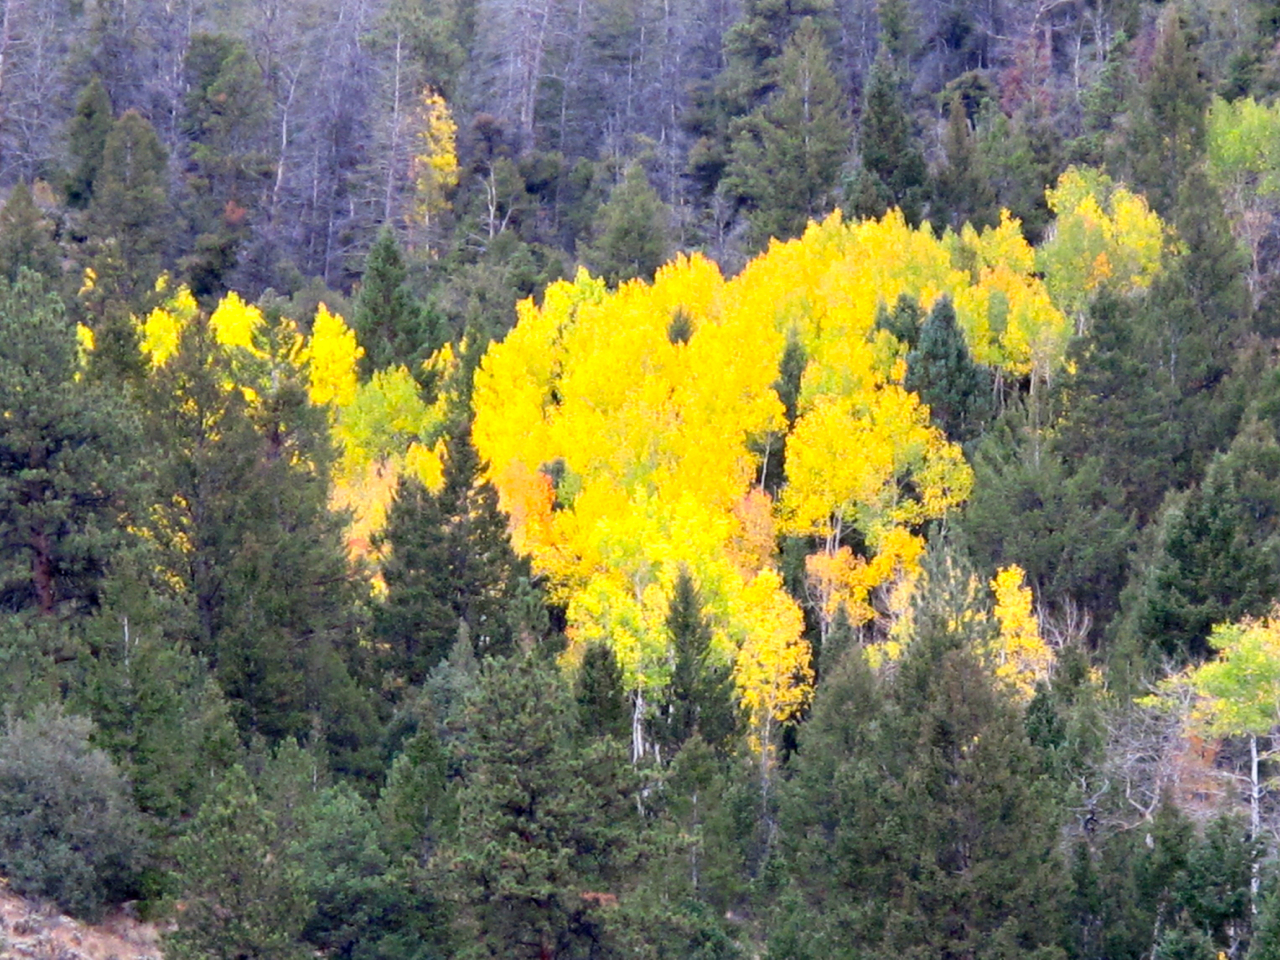 Aspen flickers in the dark forest of ponderosa pines and Douglas-firs